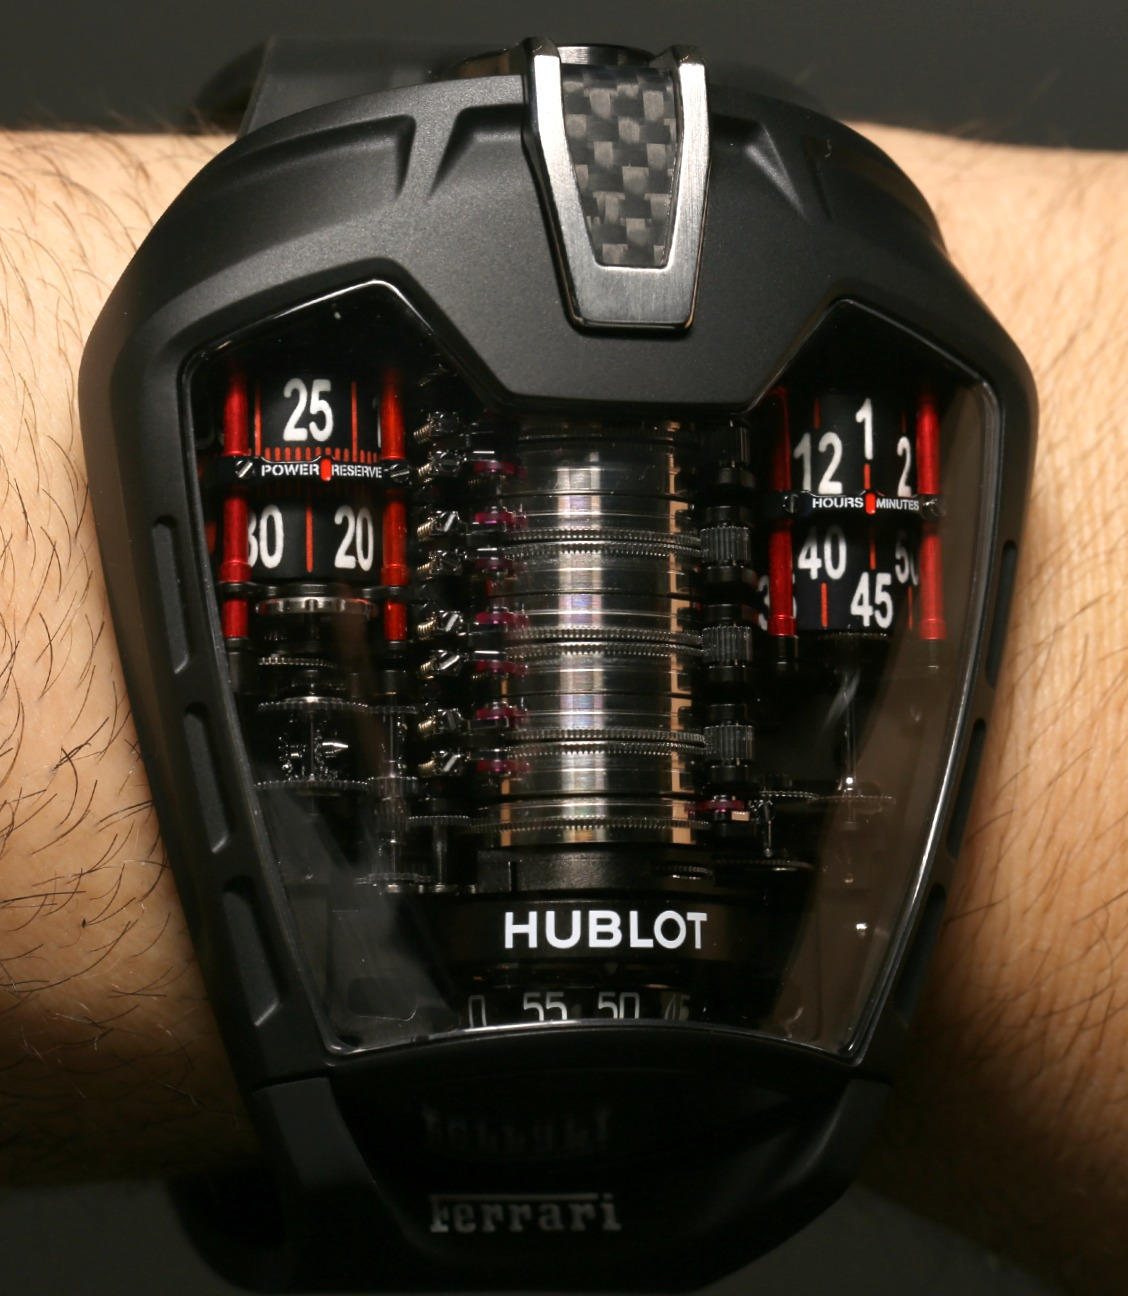 Hublot Masterpiece MP-05 LaFerrari Watch (Hublot Masterpiece MP-05 LaFerrari  Price to Be announced) Hublot Masterpiece MP-05 LaFerrari Watch is a feat of engineering worthy of the venerable race car company's flagship. It's main claim to fame is a 50-day power reserve